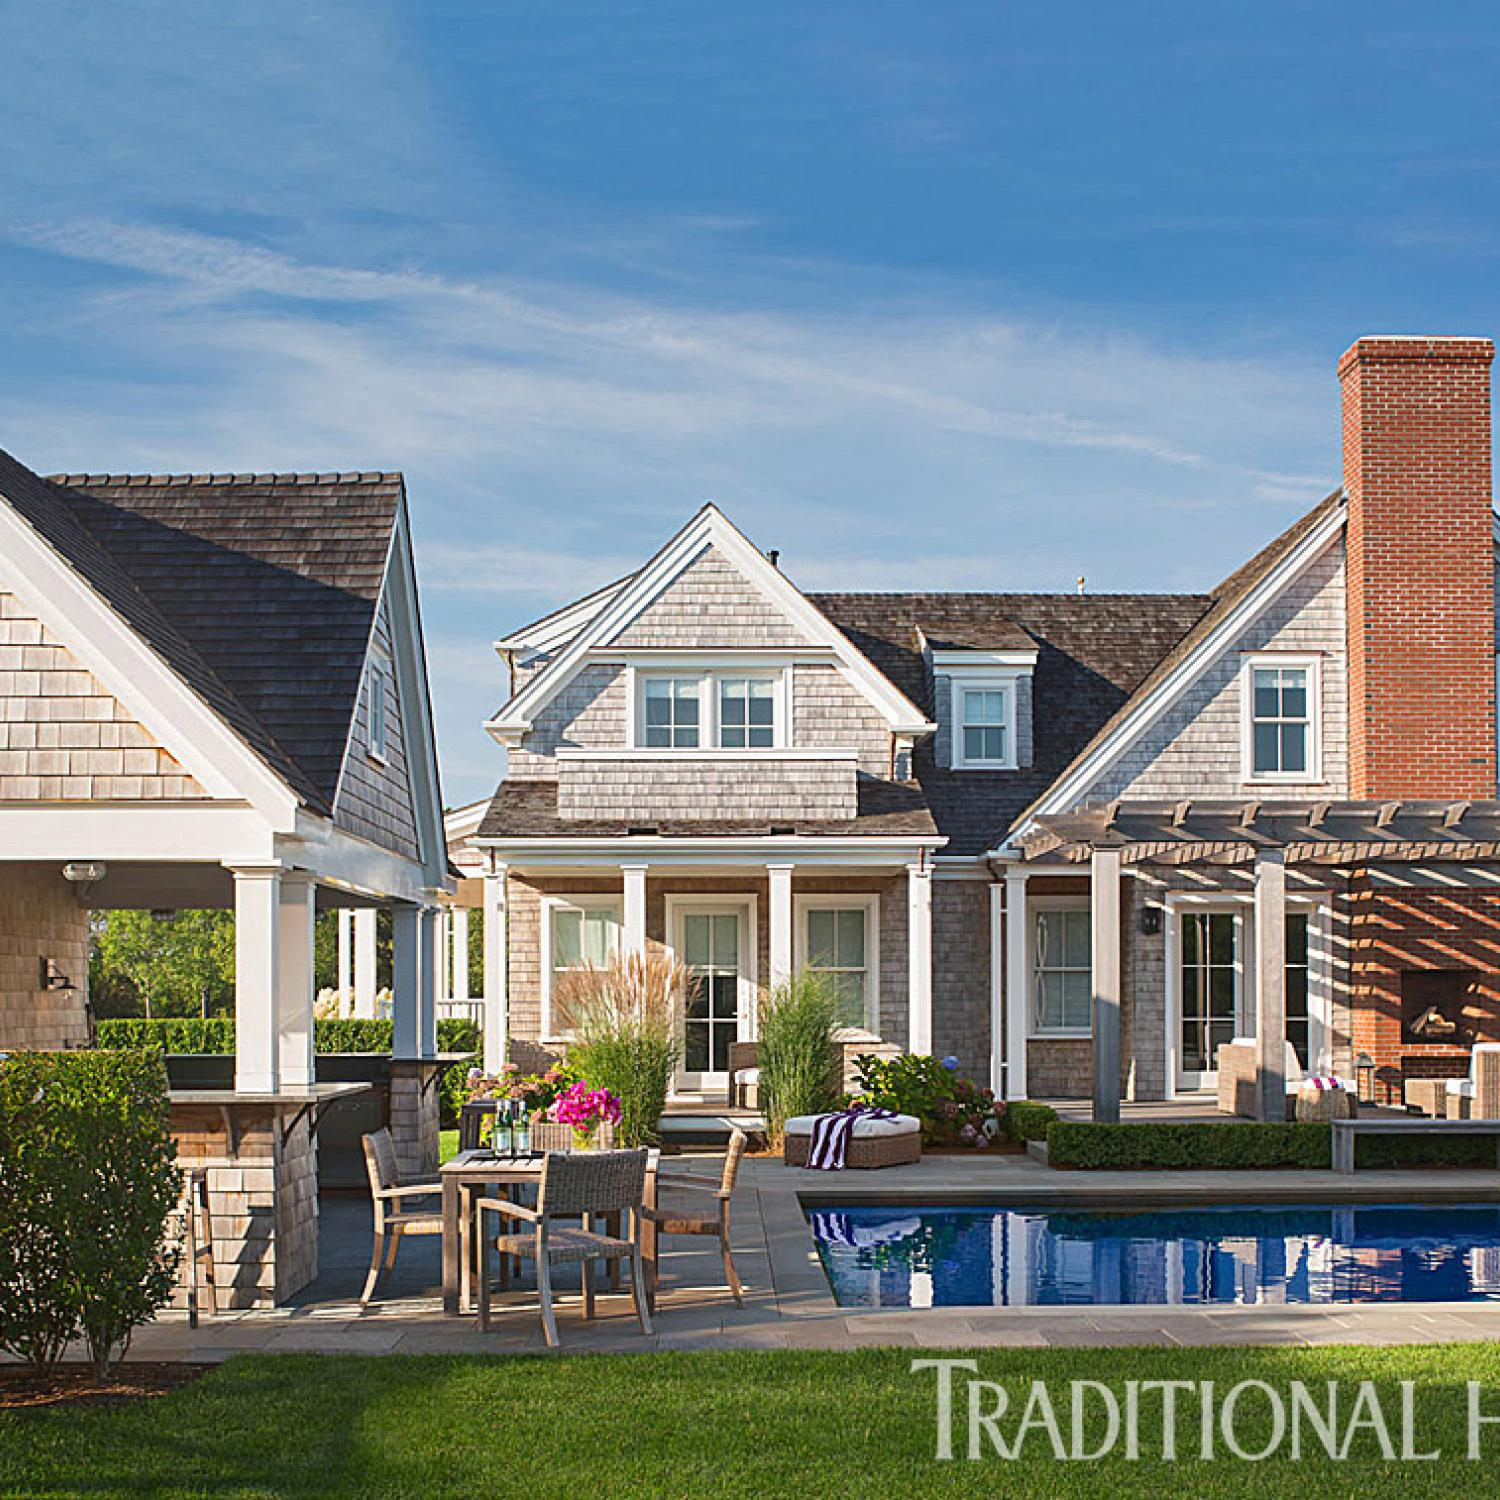 Nantucket Home with a Quiet Palette | Traditional Home on nantucket beaches, cool beach house design, americana style interior design, martha's vinyard style interior design, small modern beach house design, island interior design, south west style kitchen design, eclectic room design,